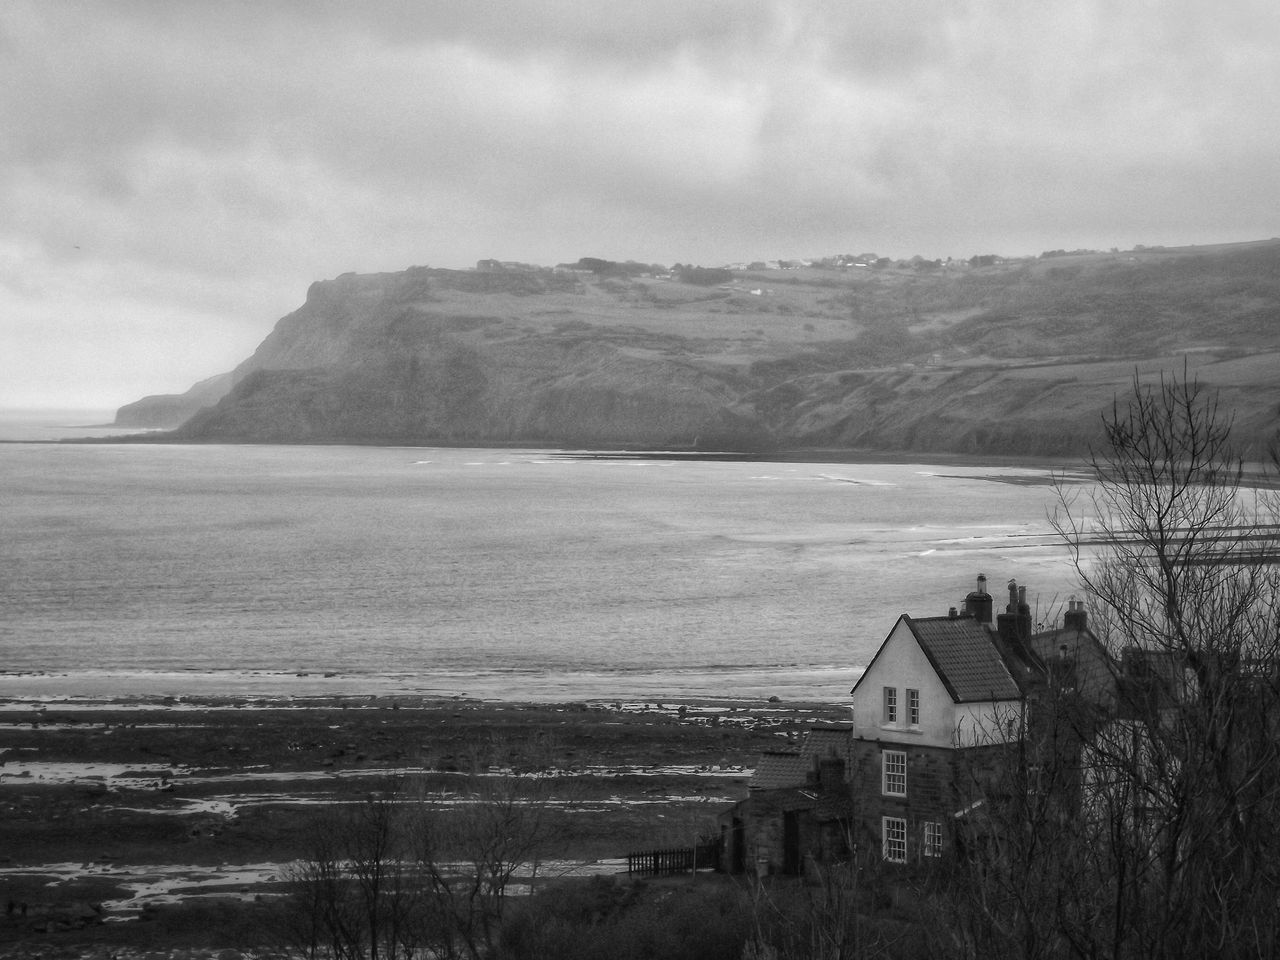 Taken at Robin Hood's Bay Whitby on a very wet and cold morningRobin Hoods Bay HDR Eye For Photography Showcase April EyeEm Hdr-Collection Fujifilm Whitby See The World Through My Eyes Black And White Portrait Monochrome Black And White Collection  Eyeem Black And White Photography Black And White Scenery Bnw_collection Creative Light And Shadow Gray Day Black & White Monochrome Black & White Photography Coastline Coastal Walk